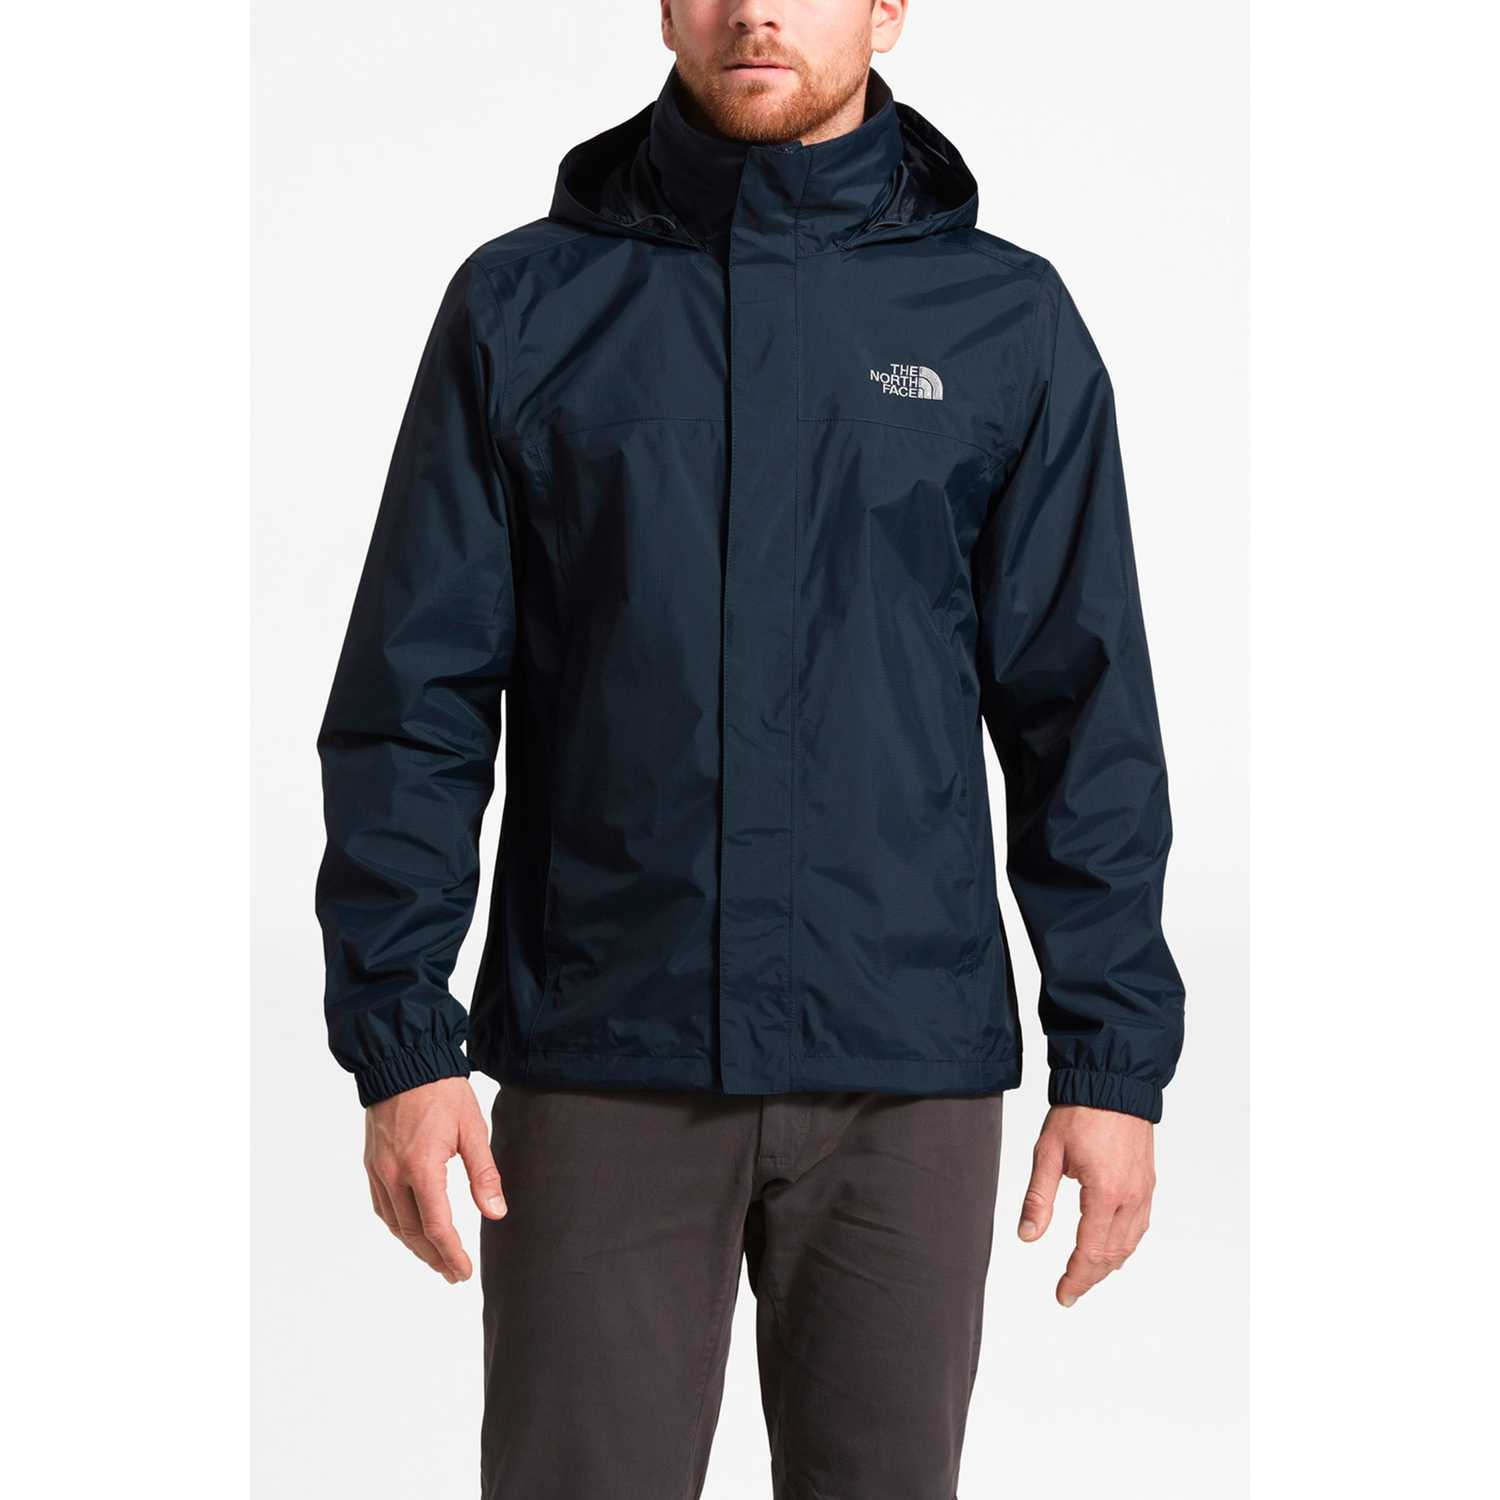 The North Face m resolve 2 jacket Navy Sweatshirts Deportivos